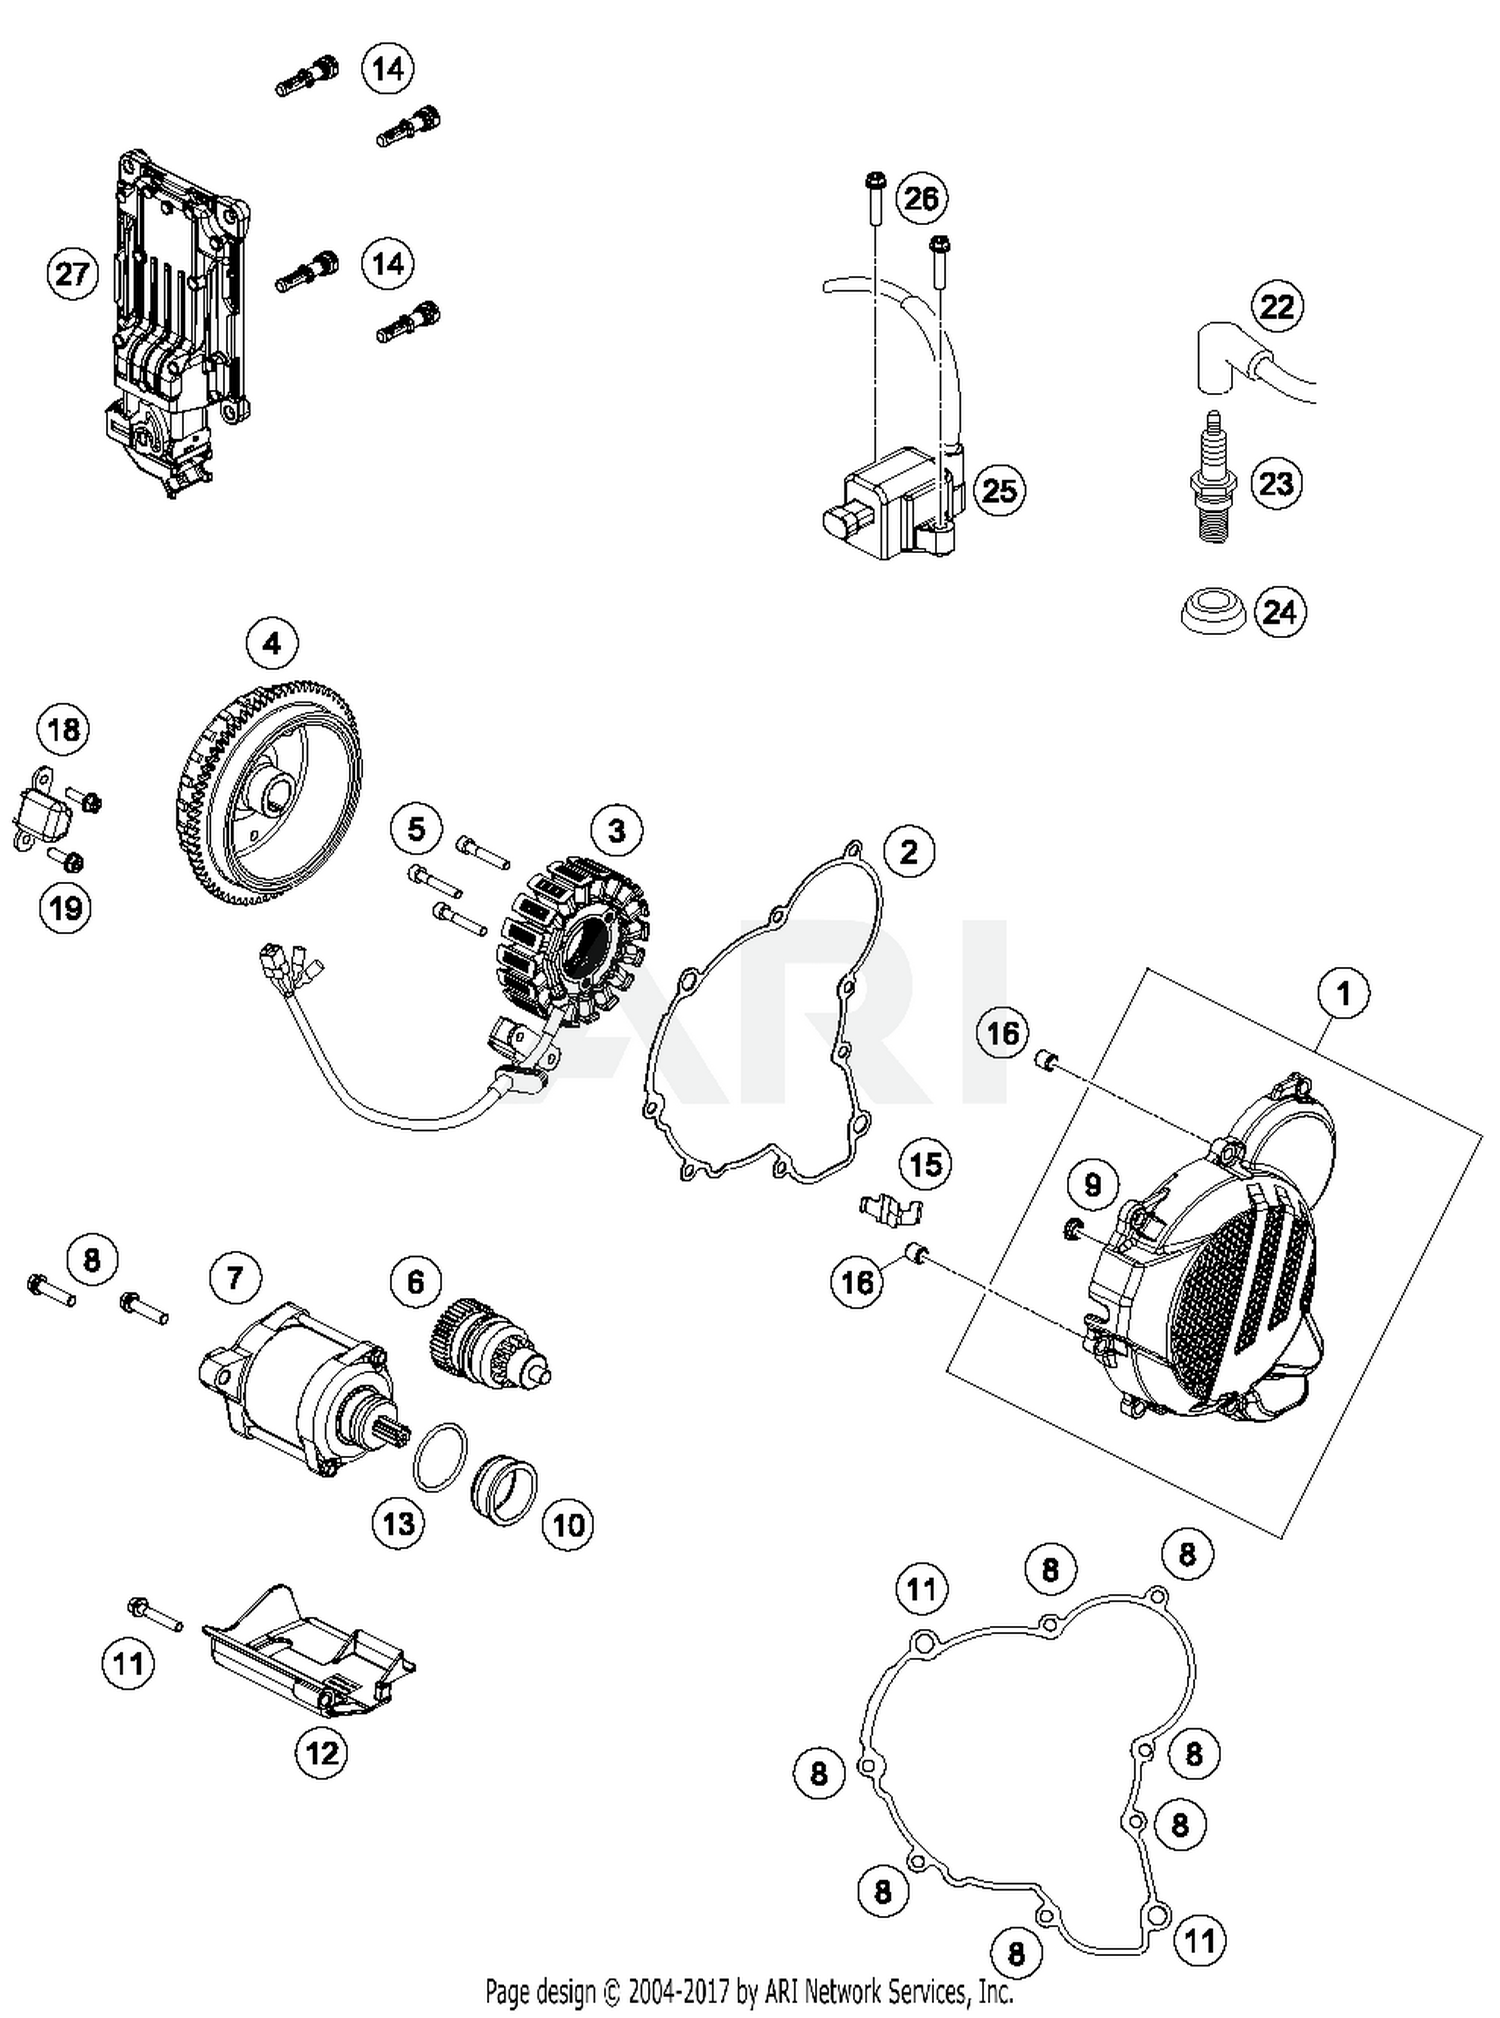 2018 Ktm 250 Xc W Tpi Ignition System Parts Best Oem Engine Diagram Schematic Search Results 0 In Schematics